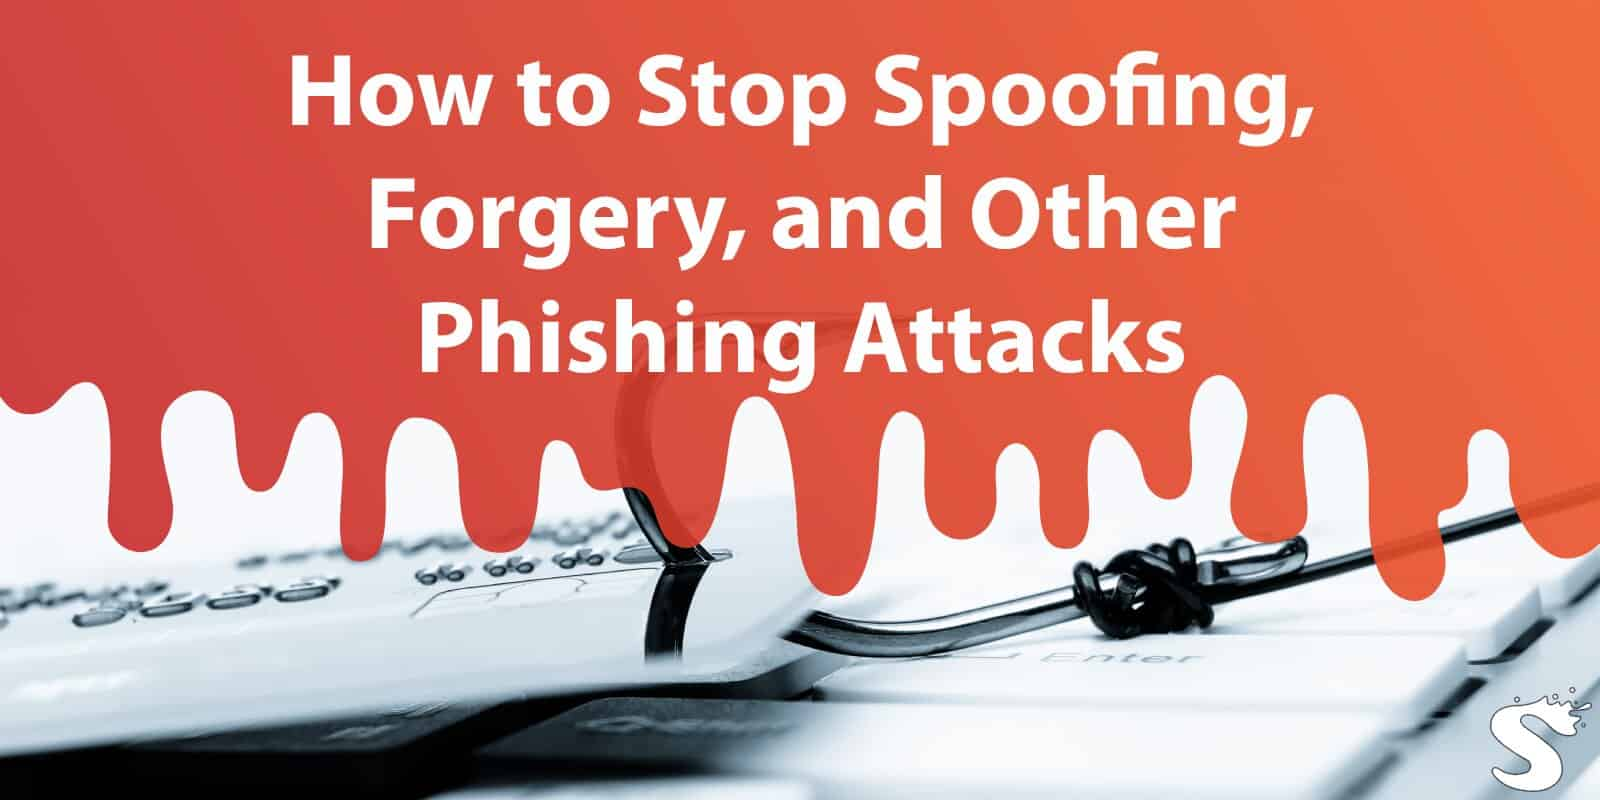 How to Stop Spoofing, Forgery, and Other Phishing Attacks